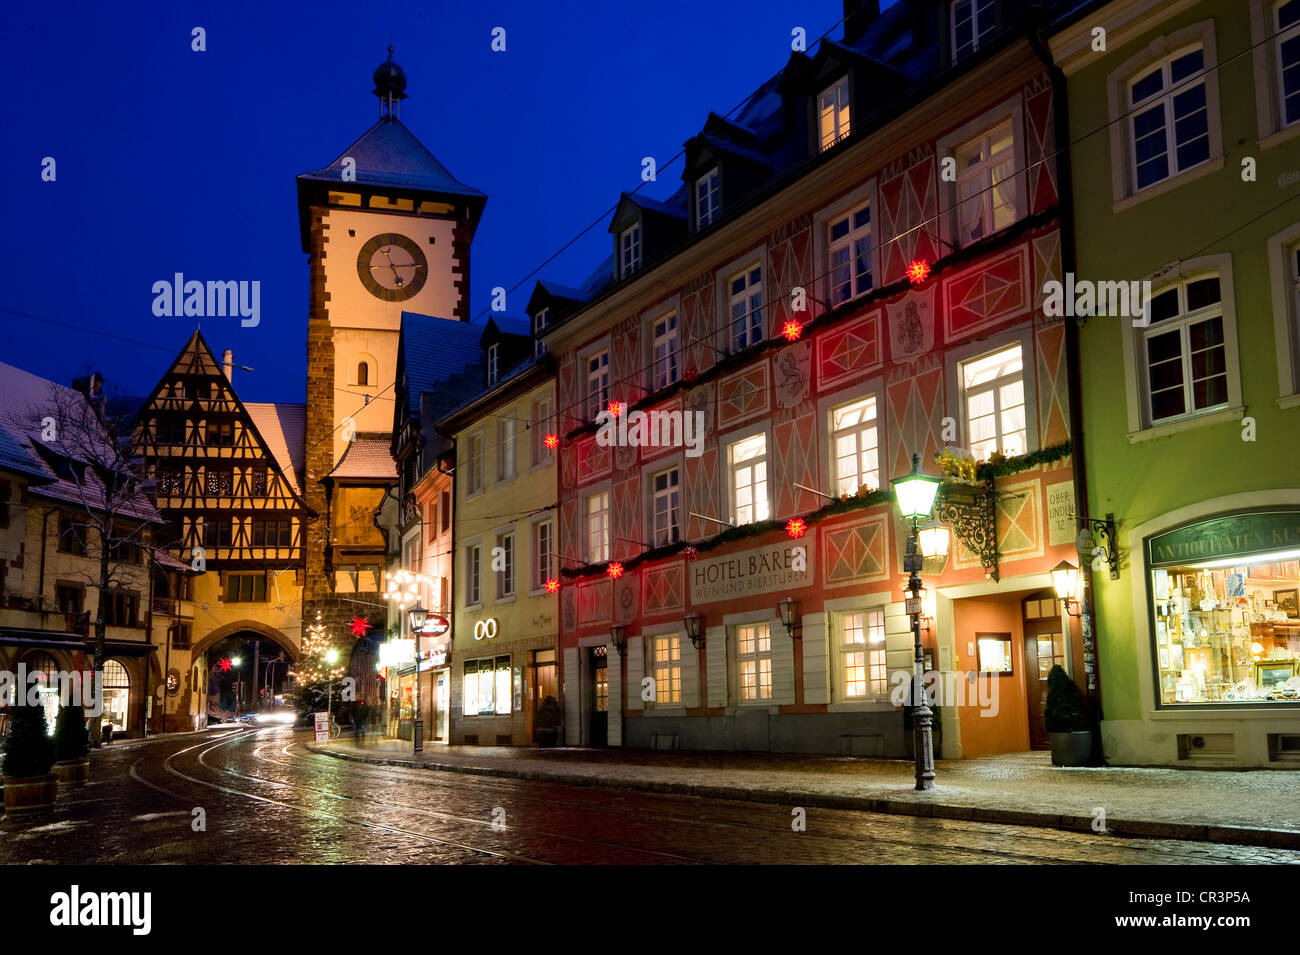 wintery old town with schwabentor city gate at christmas time stock photo royalty free image. Black Bedroom Furniture Sets. Home Design Ideas